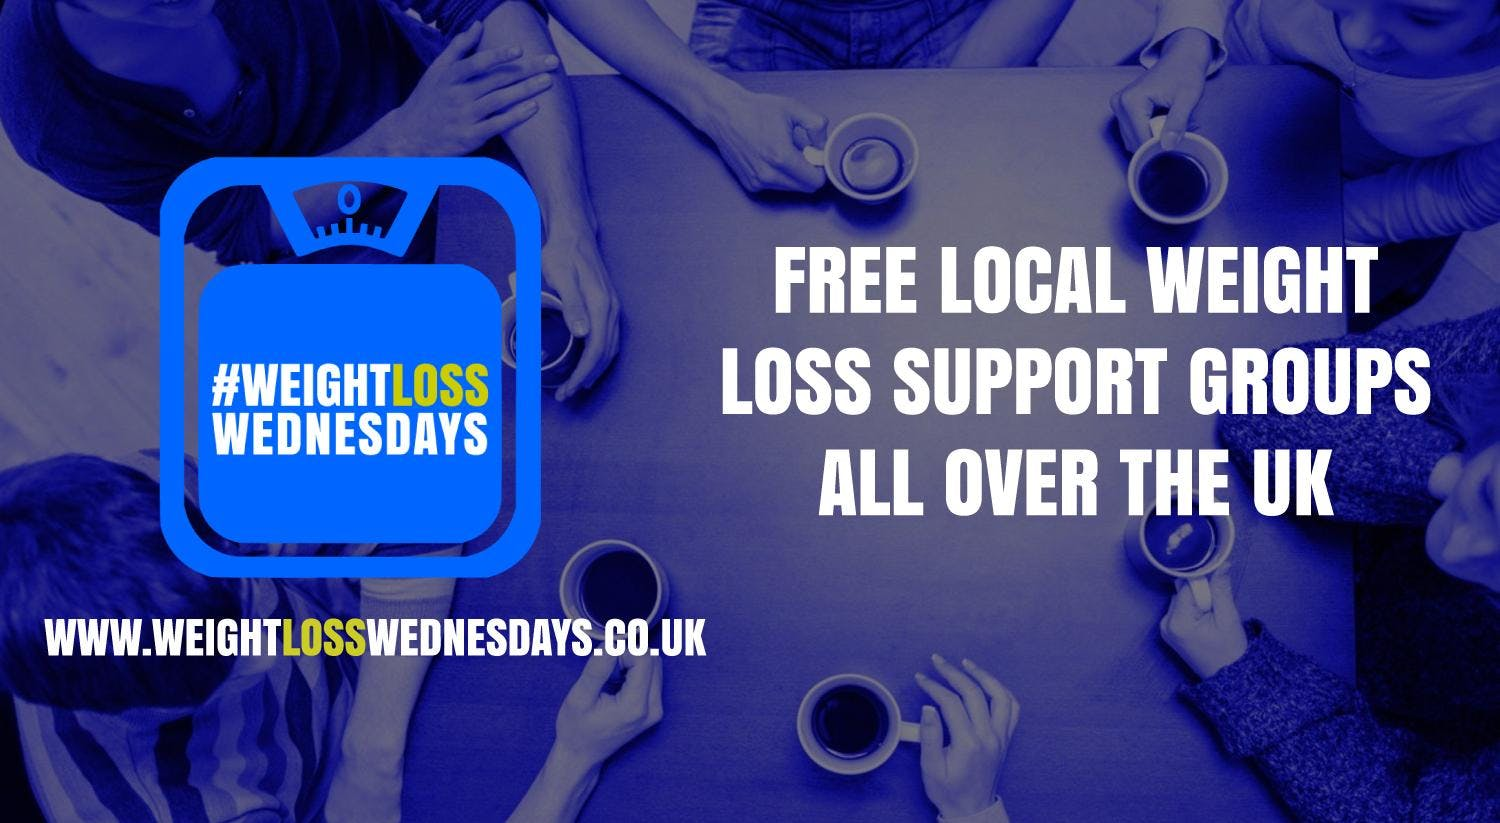 WEIGHT LOSS WEDNESDAYS! Free weekly support group in Barnsley